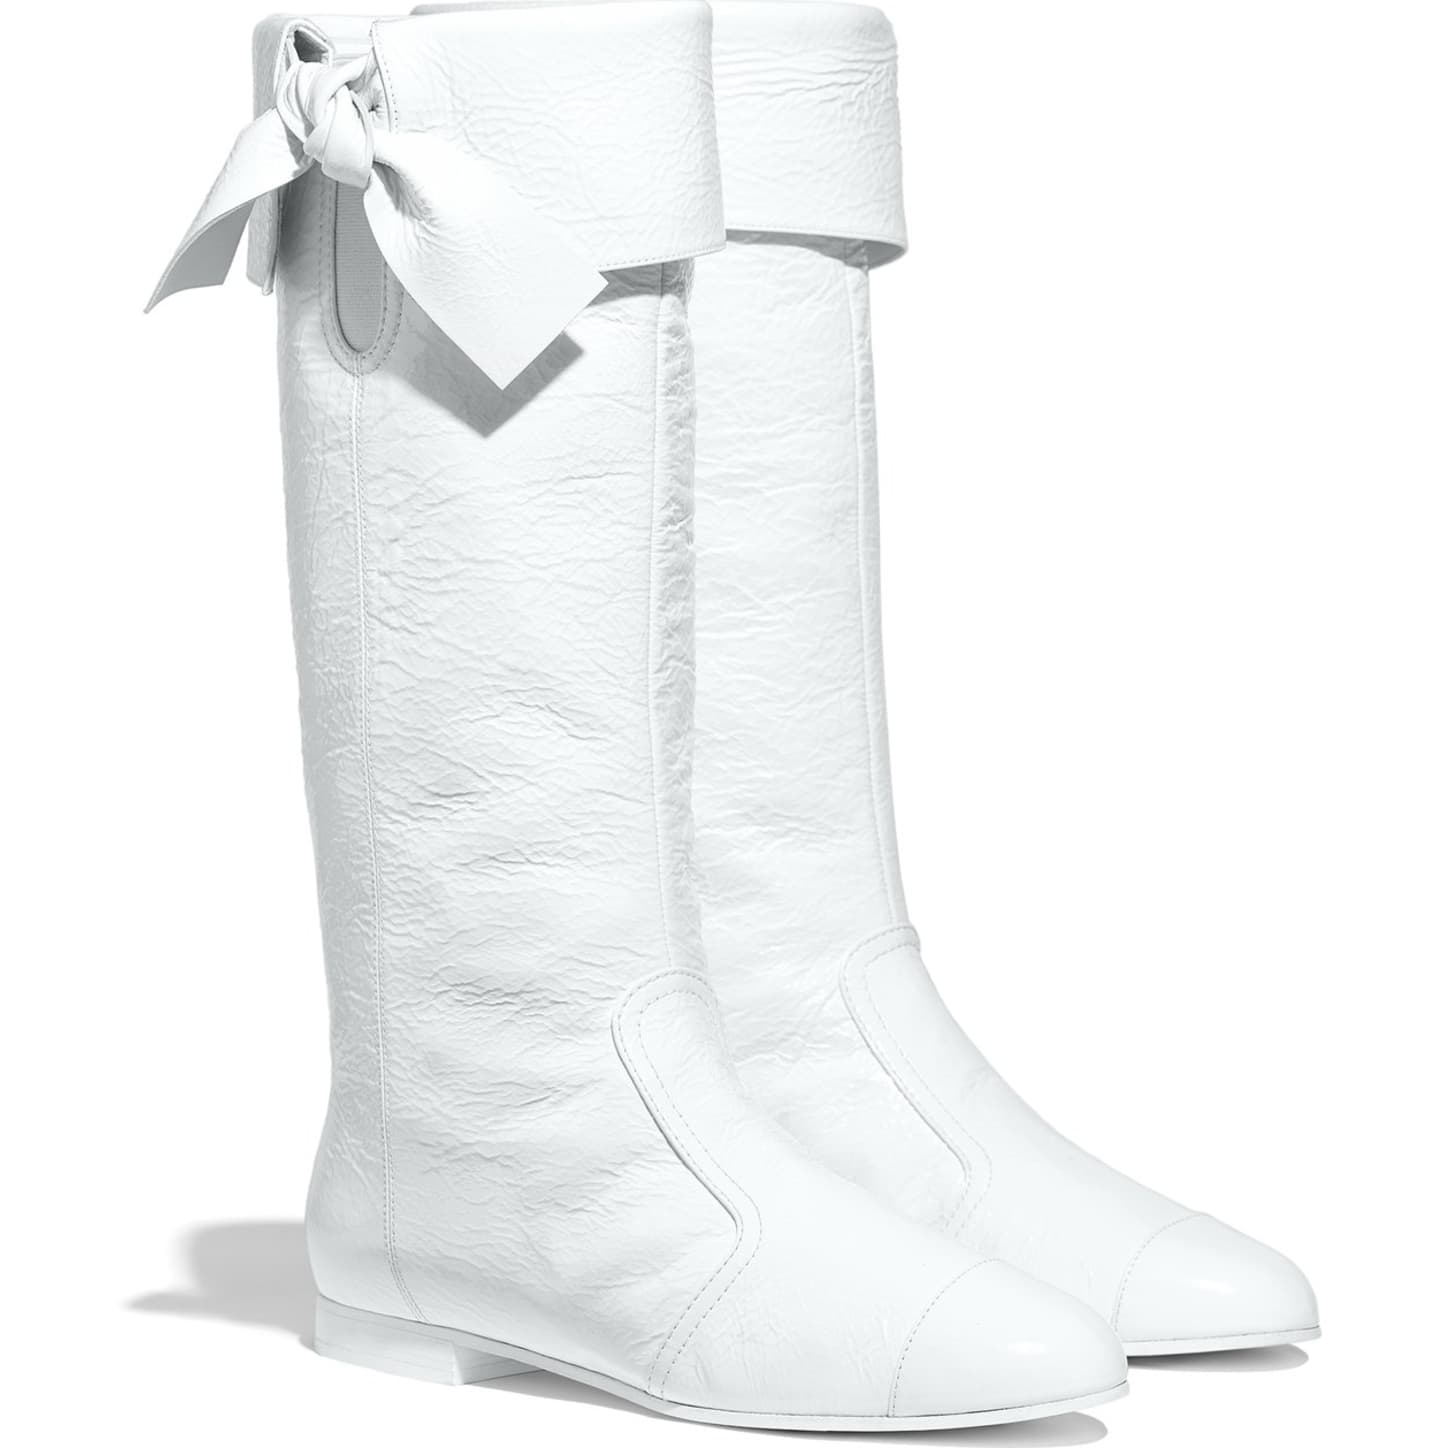 High Boots - White - Crumpled Lambskin - Alternative view - see standard sized version